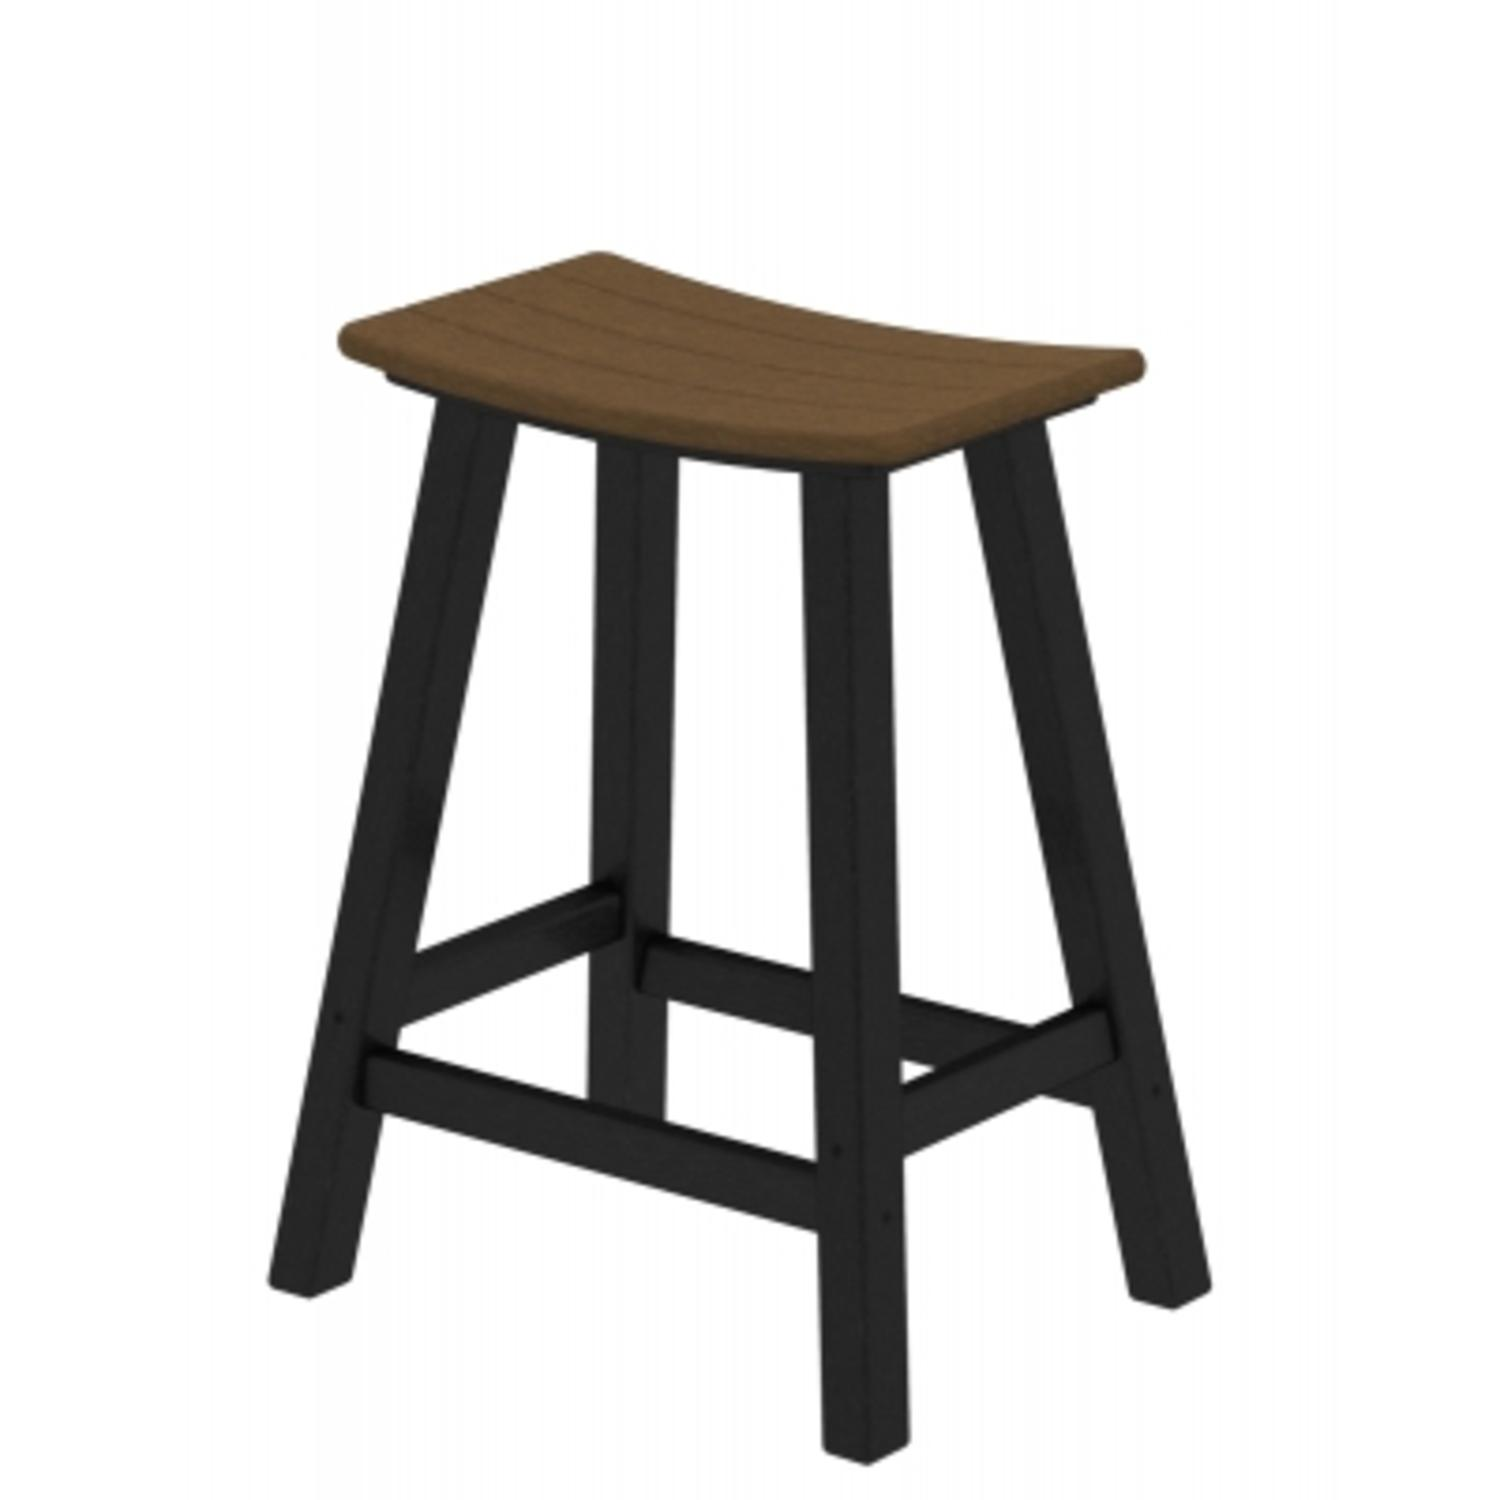 "24.75"" Recycled Earth-Friendly Curved Outdoor Bar Stool - Teak With Black Frame"